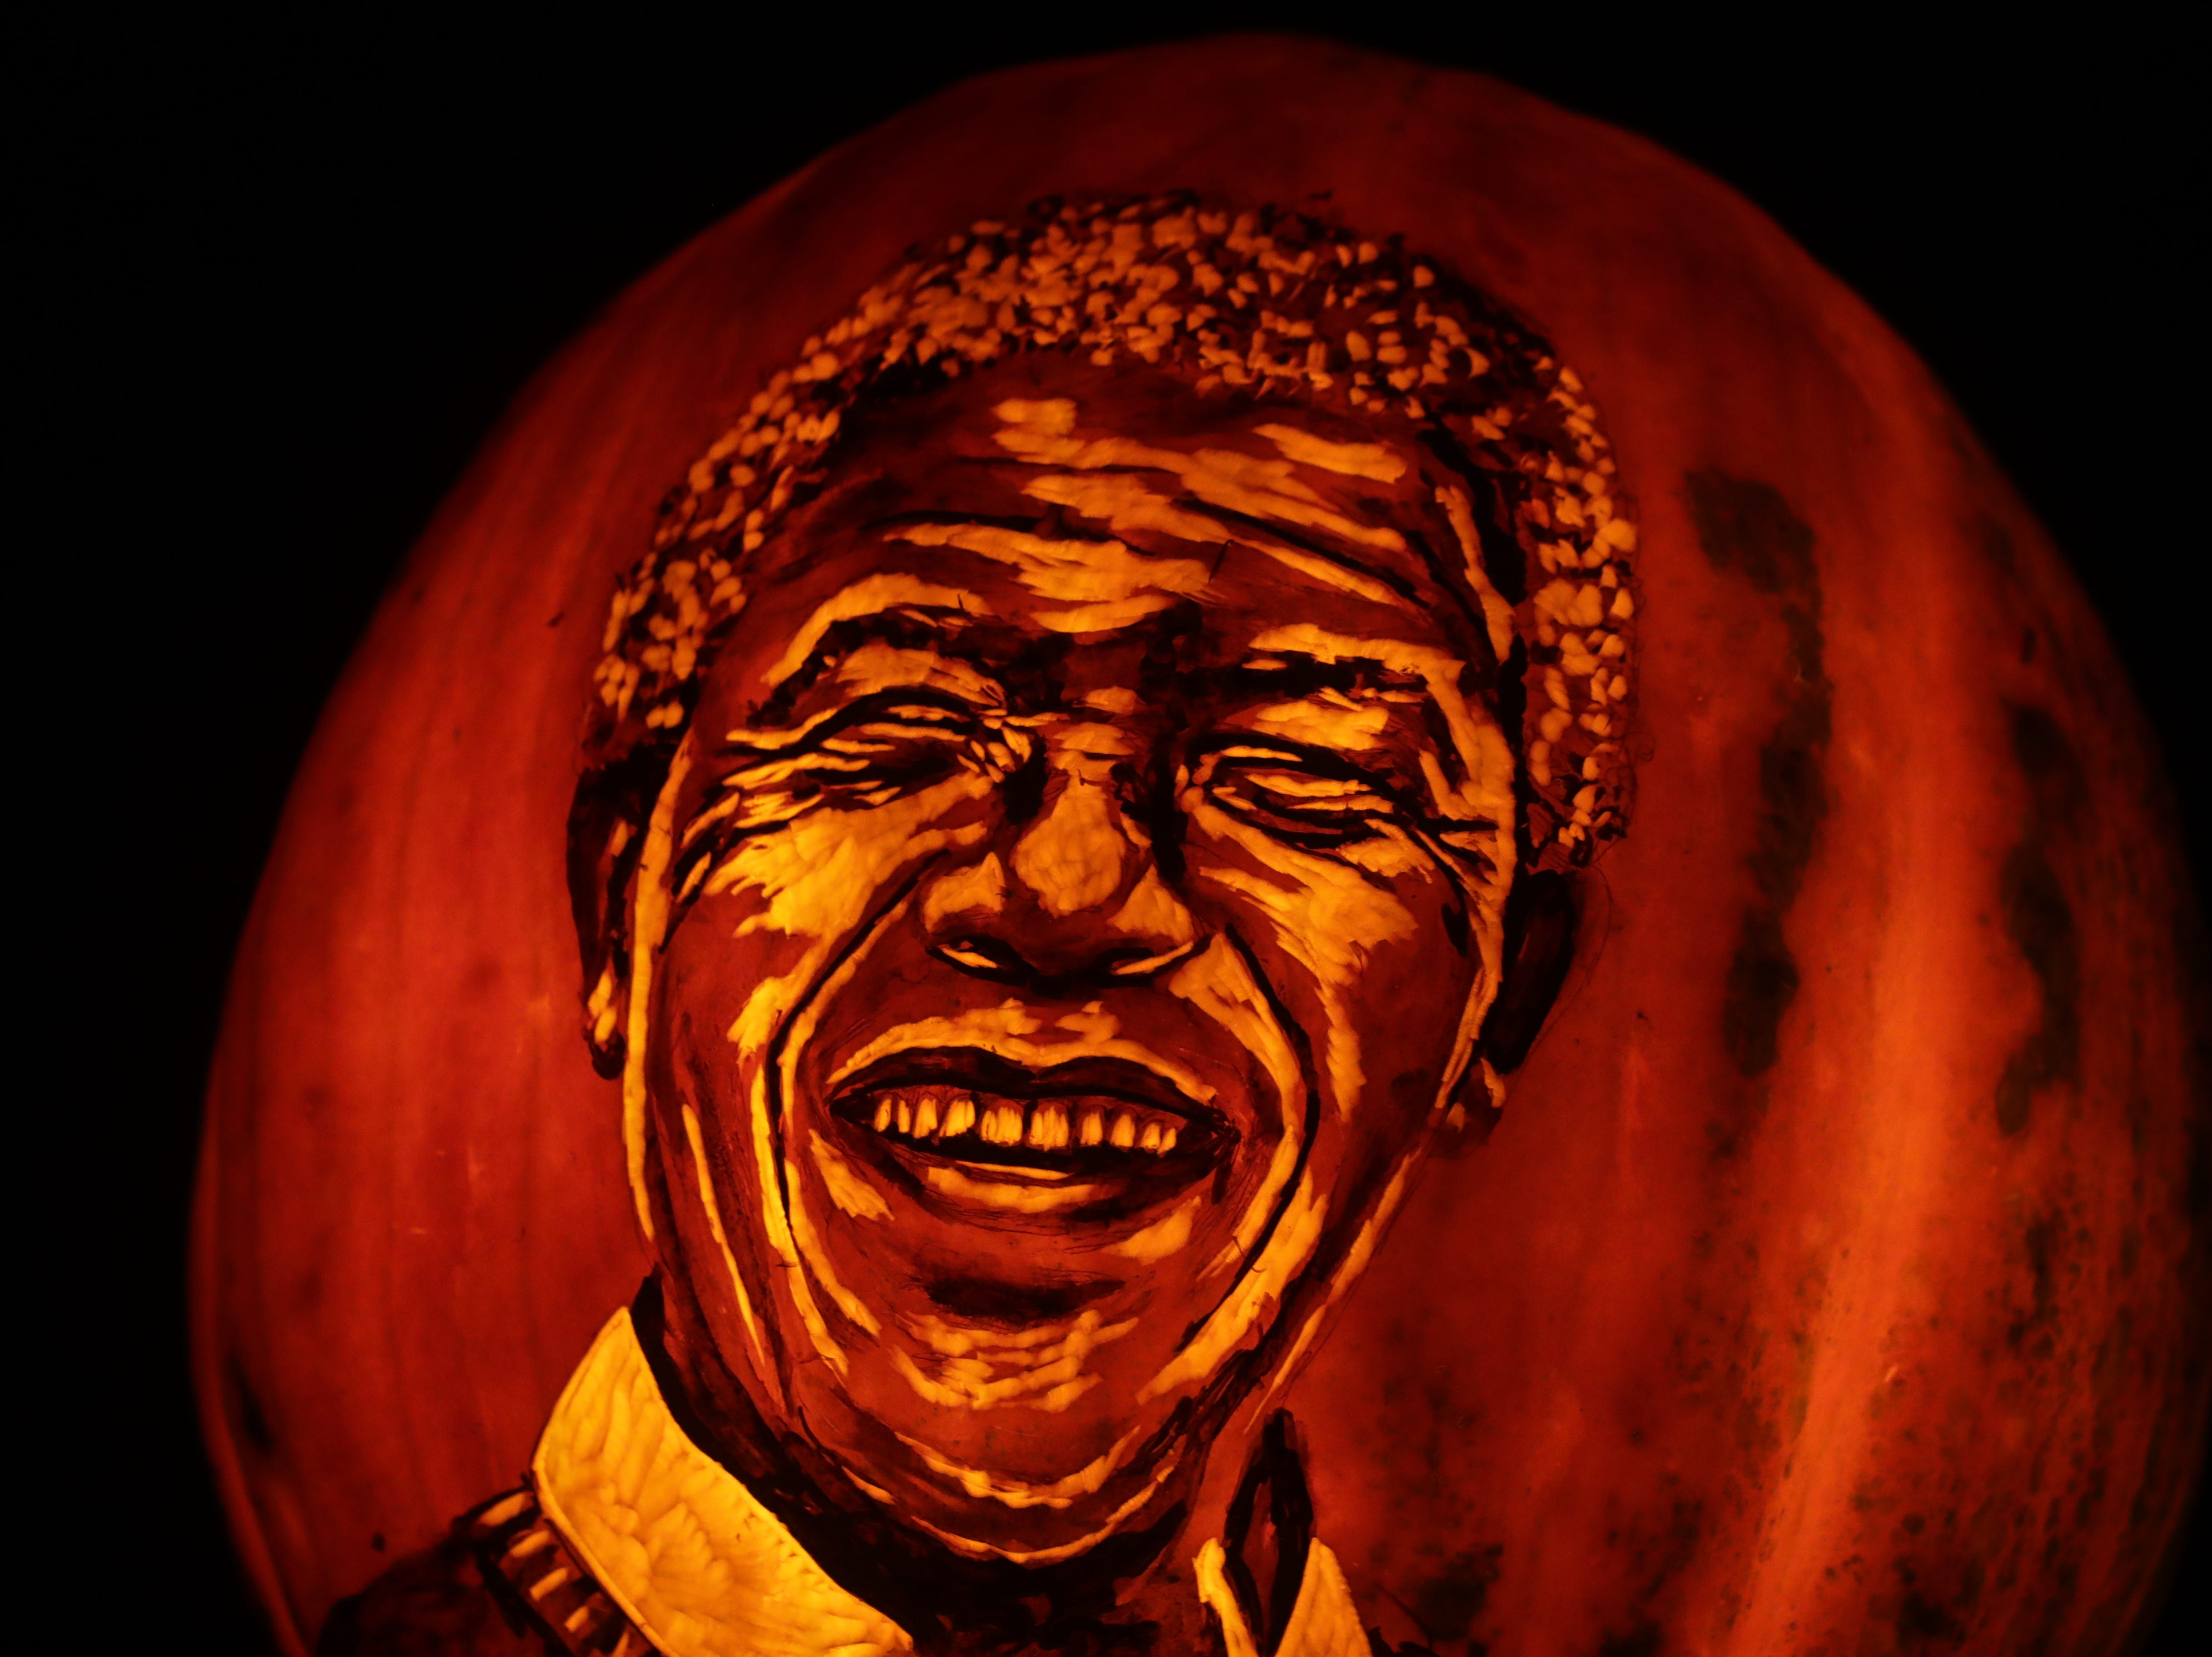 Nelson Mandela appears on a pumpkin at this year's Jack O' Lantern Spectacular. Oct. 9, 2018